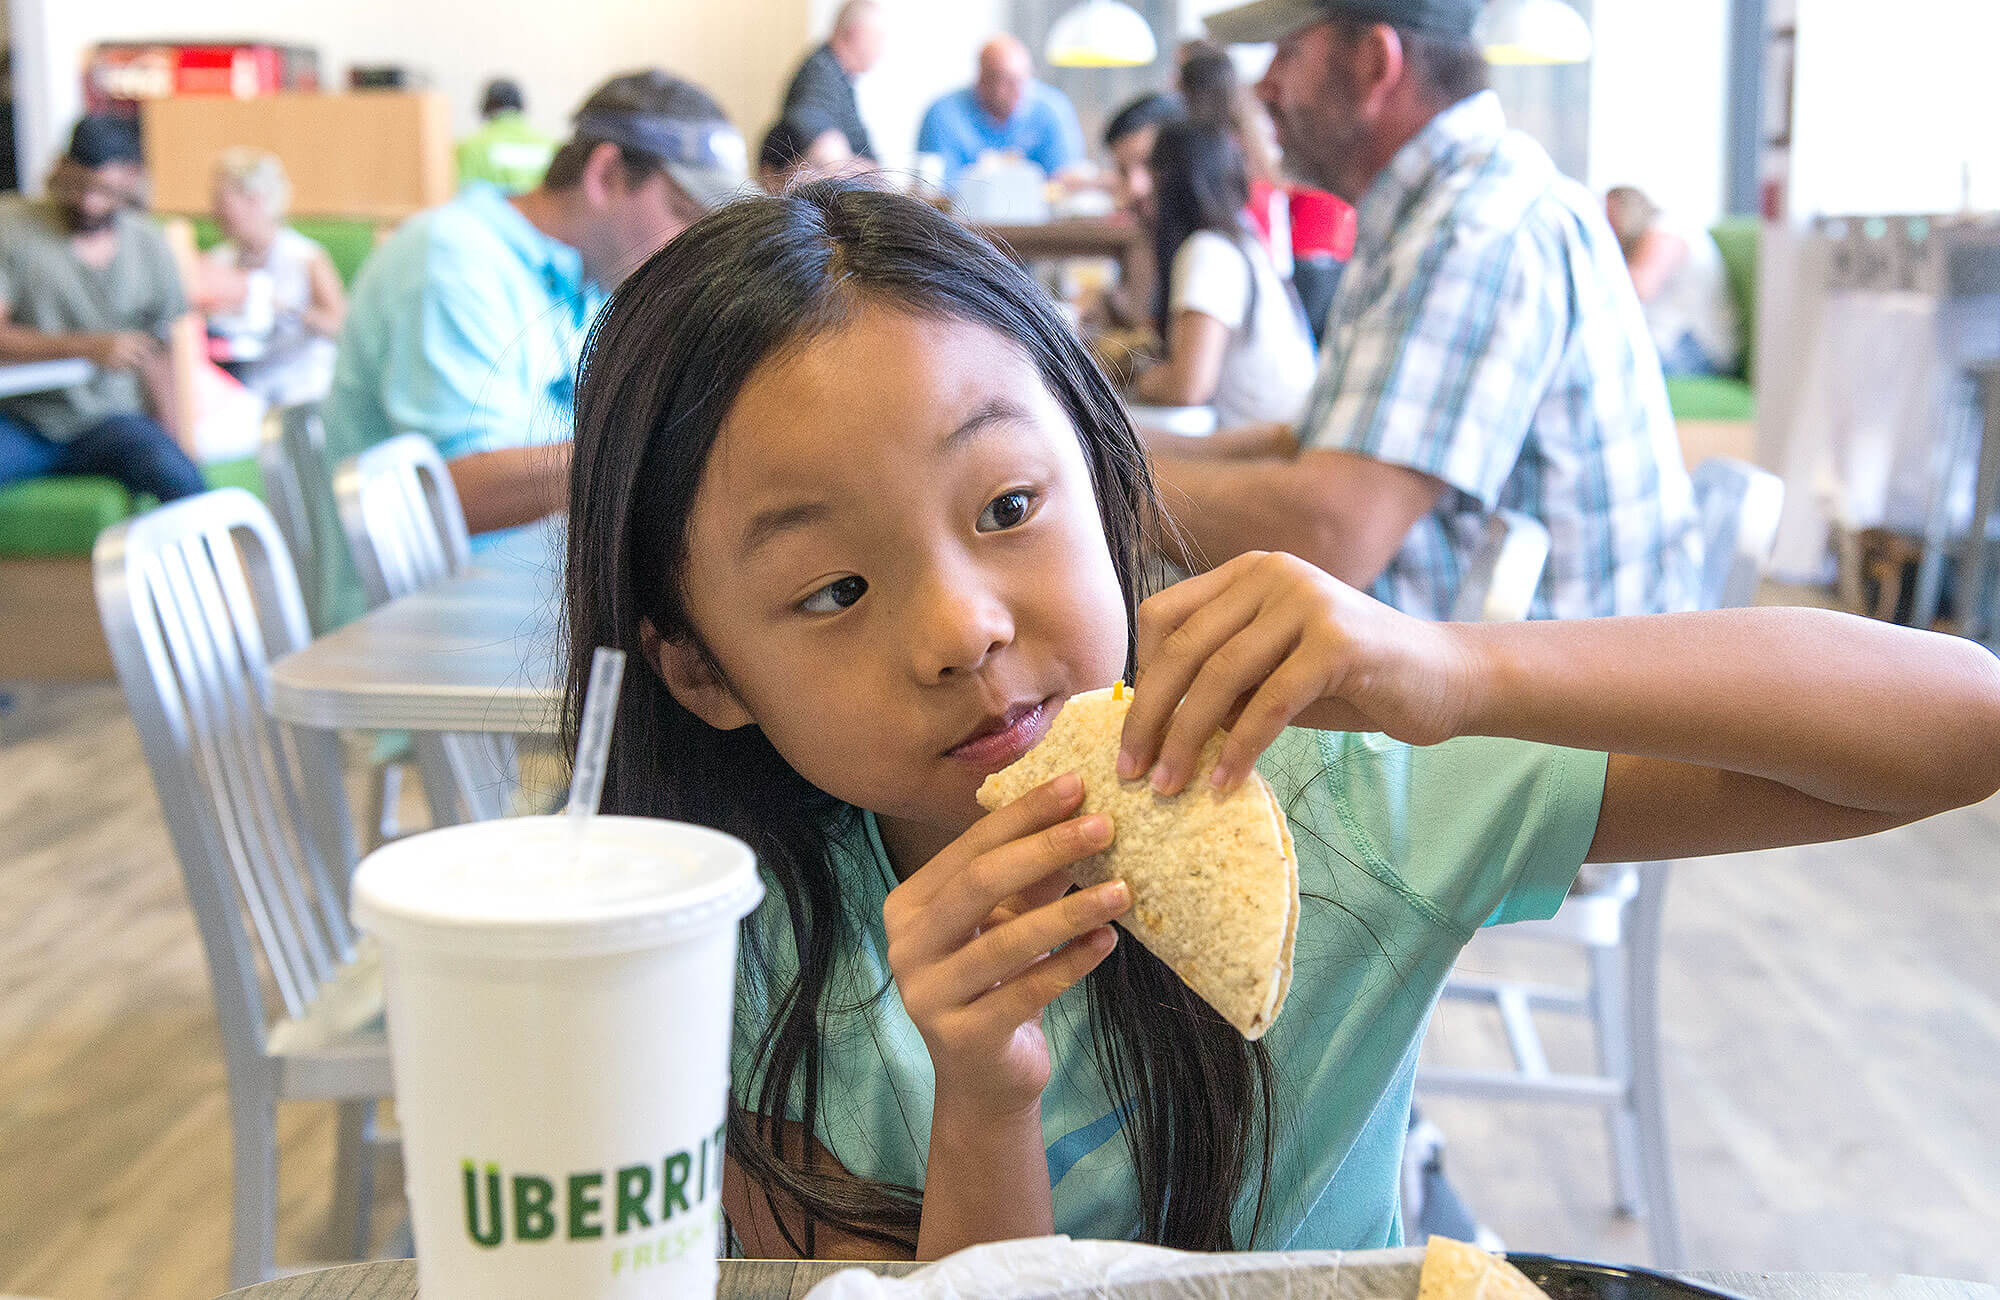 Überrito Celebrates Educators With Free Food